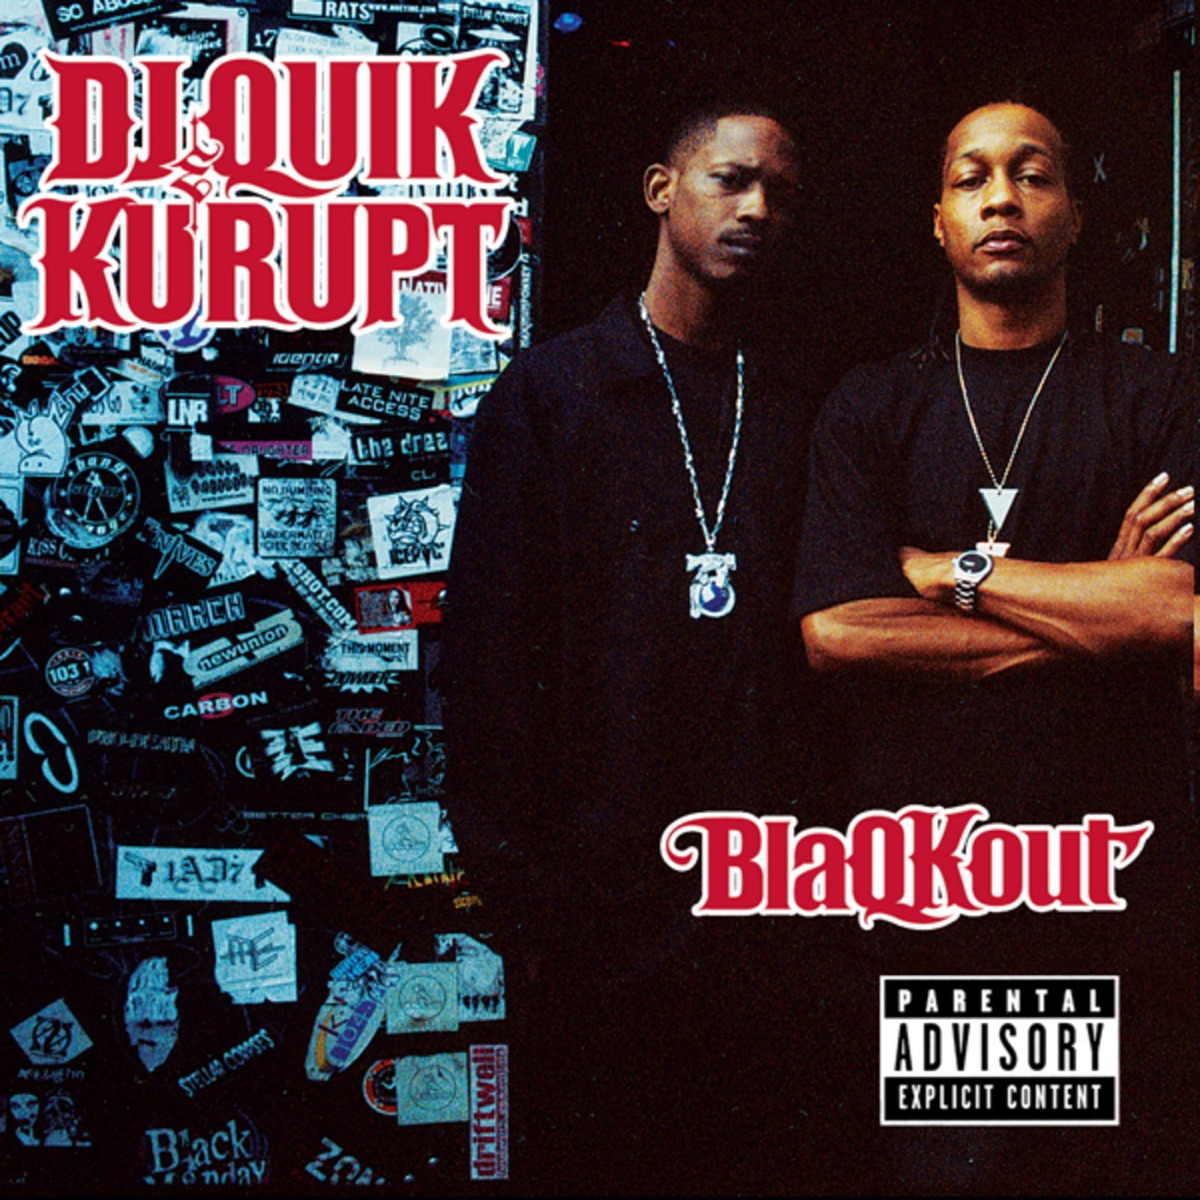 BlaQKout DJ Quik  Kurupt CD cover